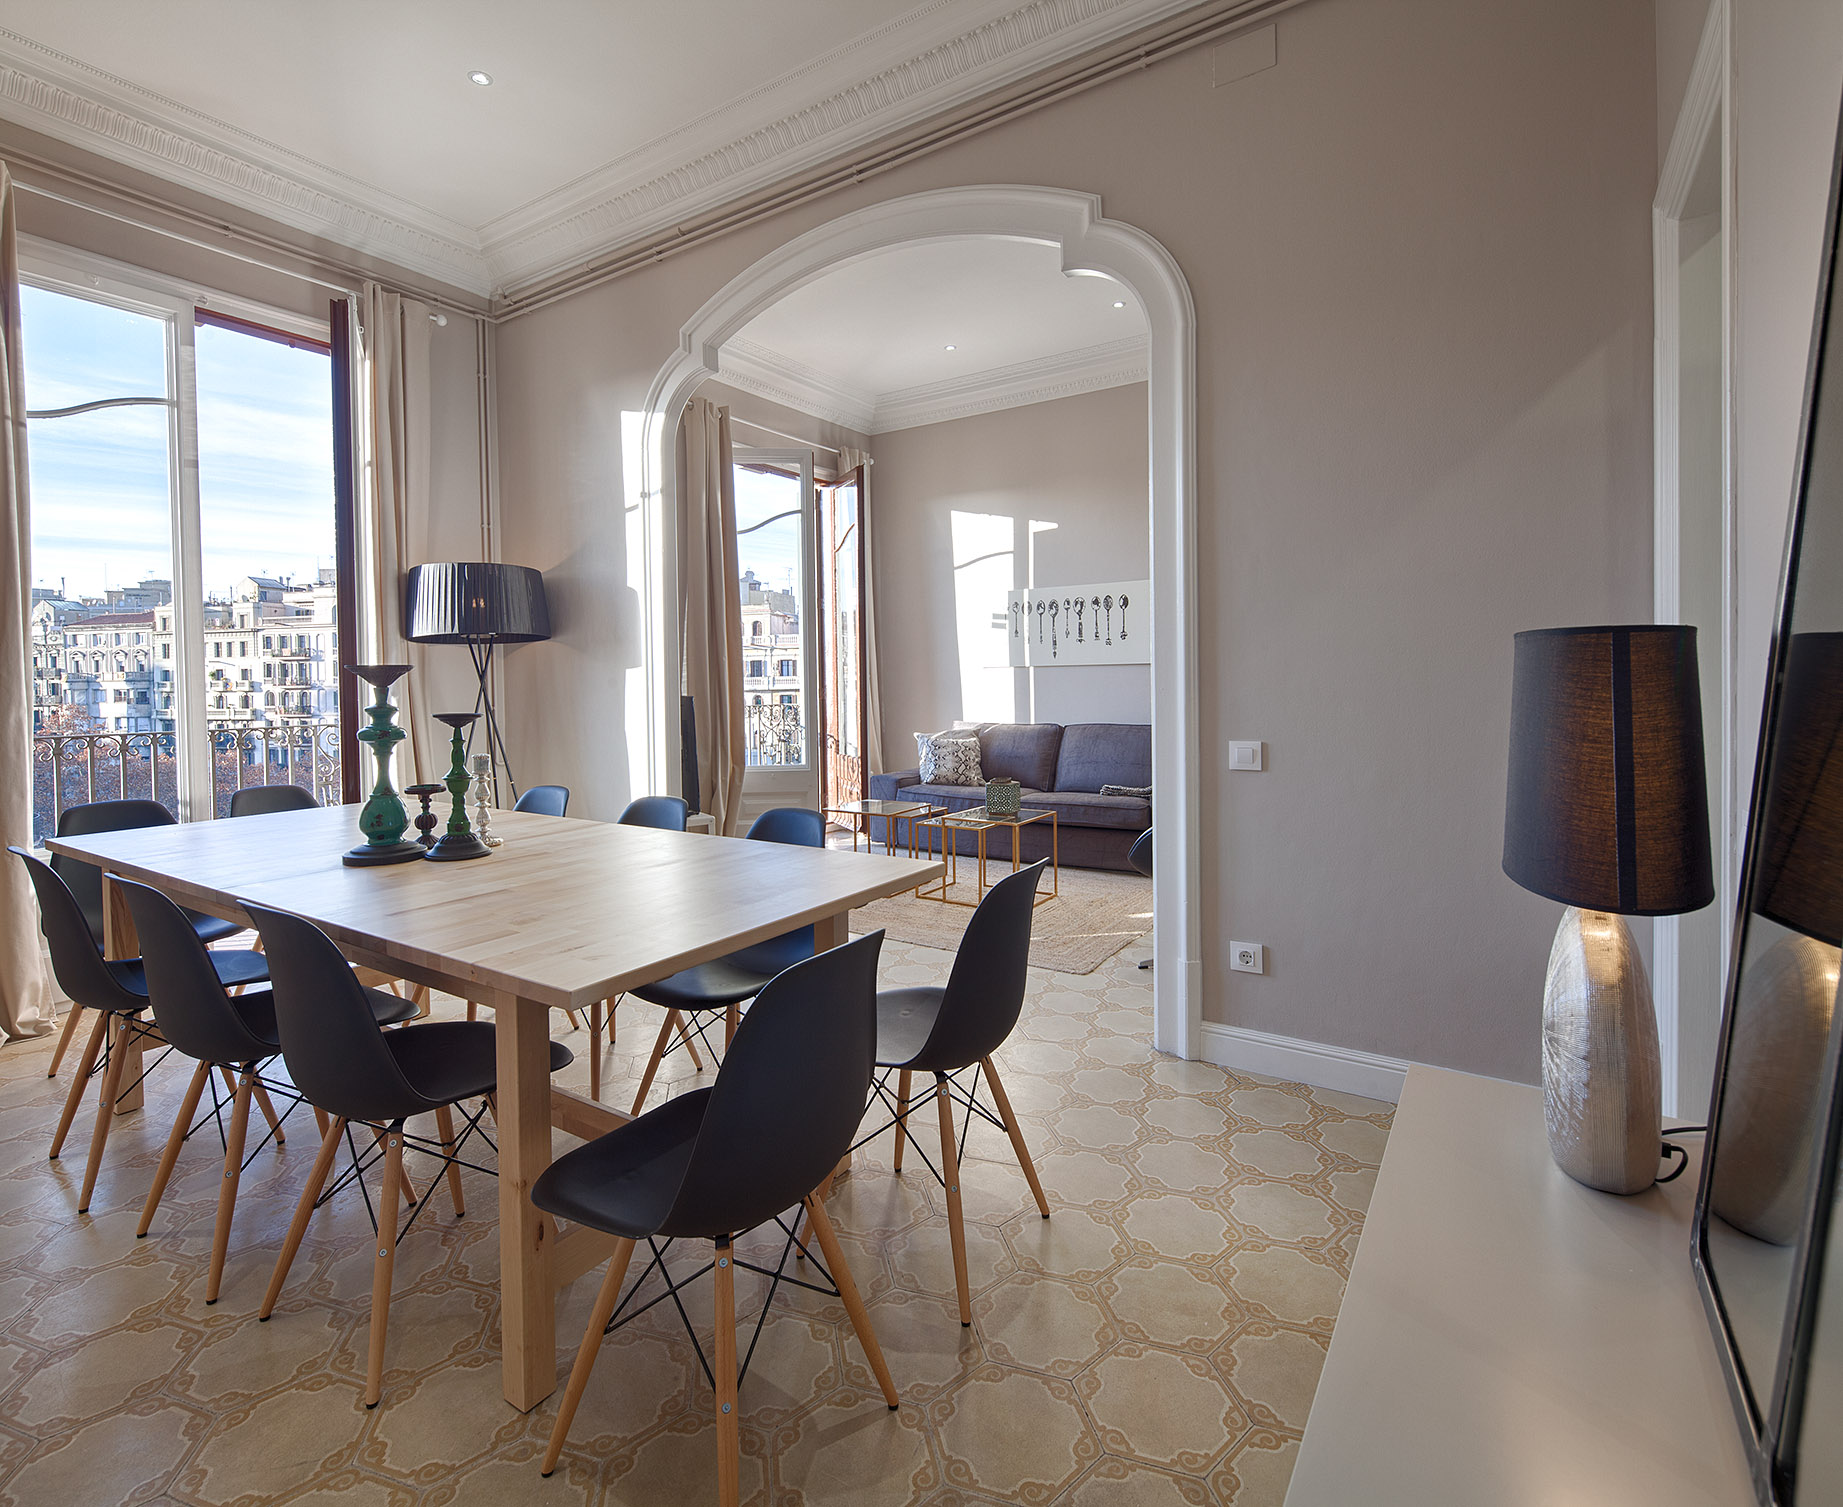 R CATALUNYA 98bis 4 1 06 Fantastic Apartments near Sagrada Familia!